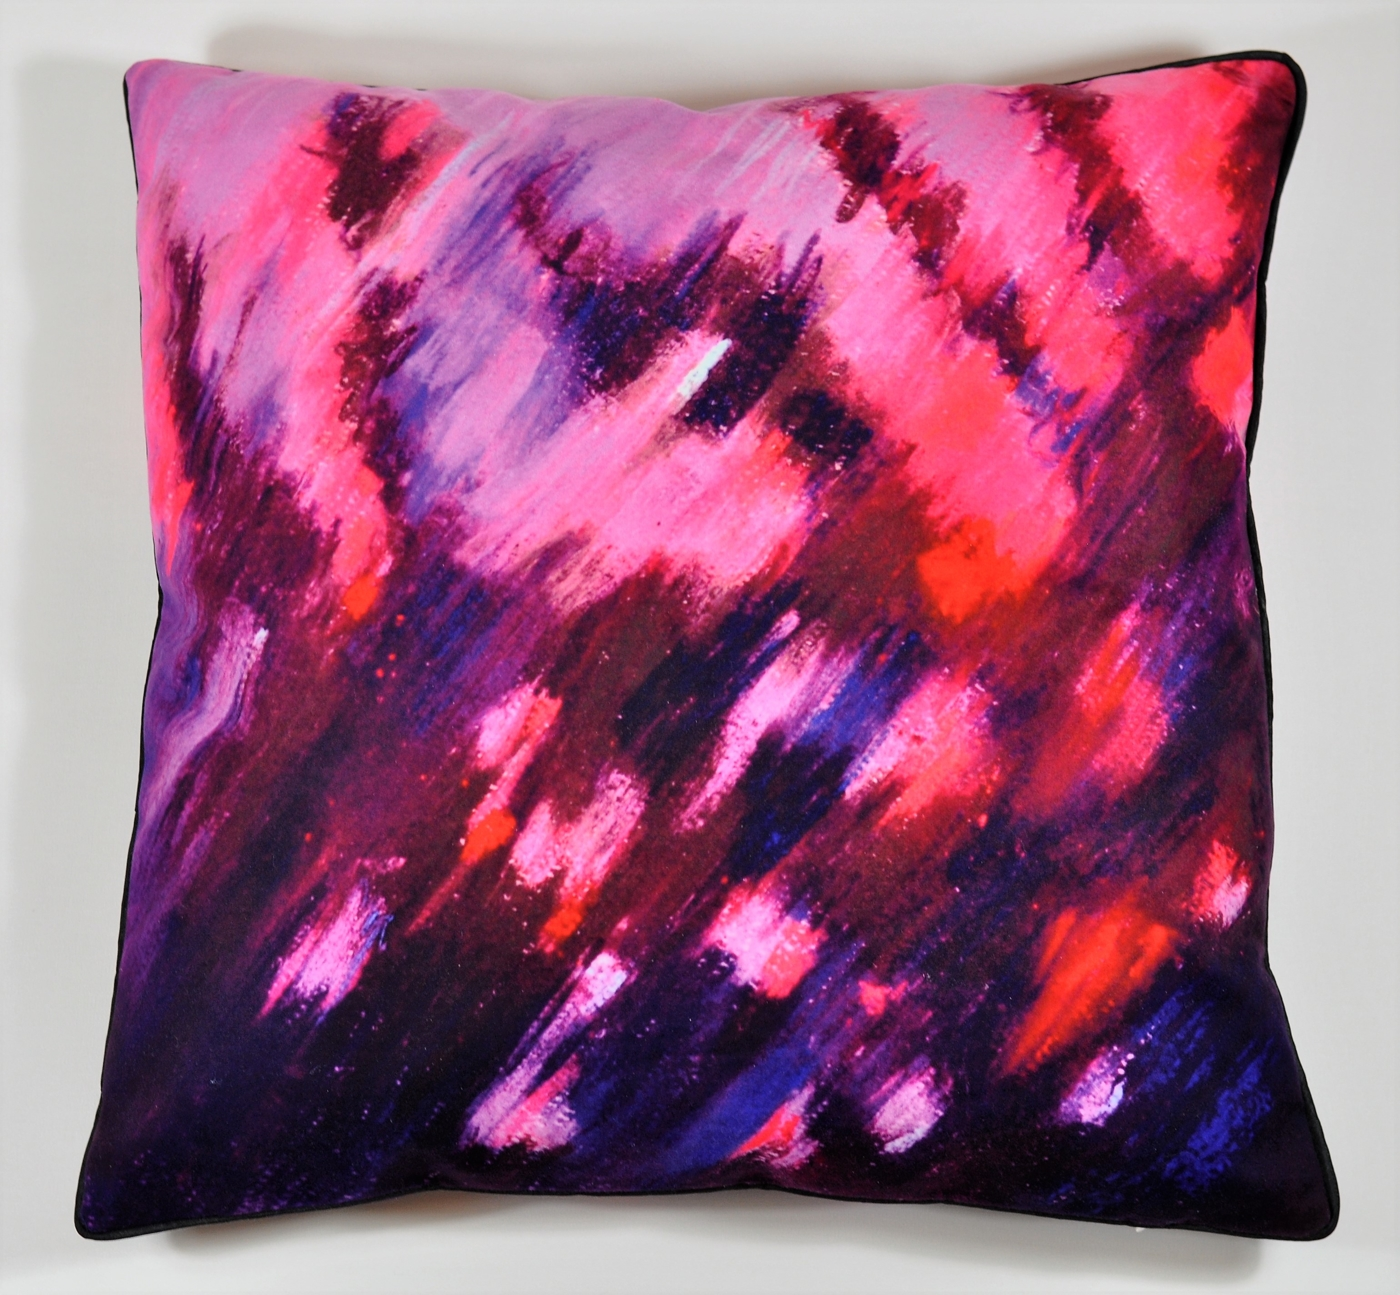 Pillow cover Sunset, Anna Afzelius-Alm, Afzelius-Alm Art